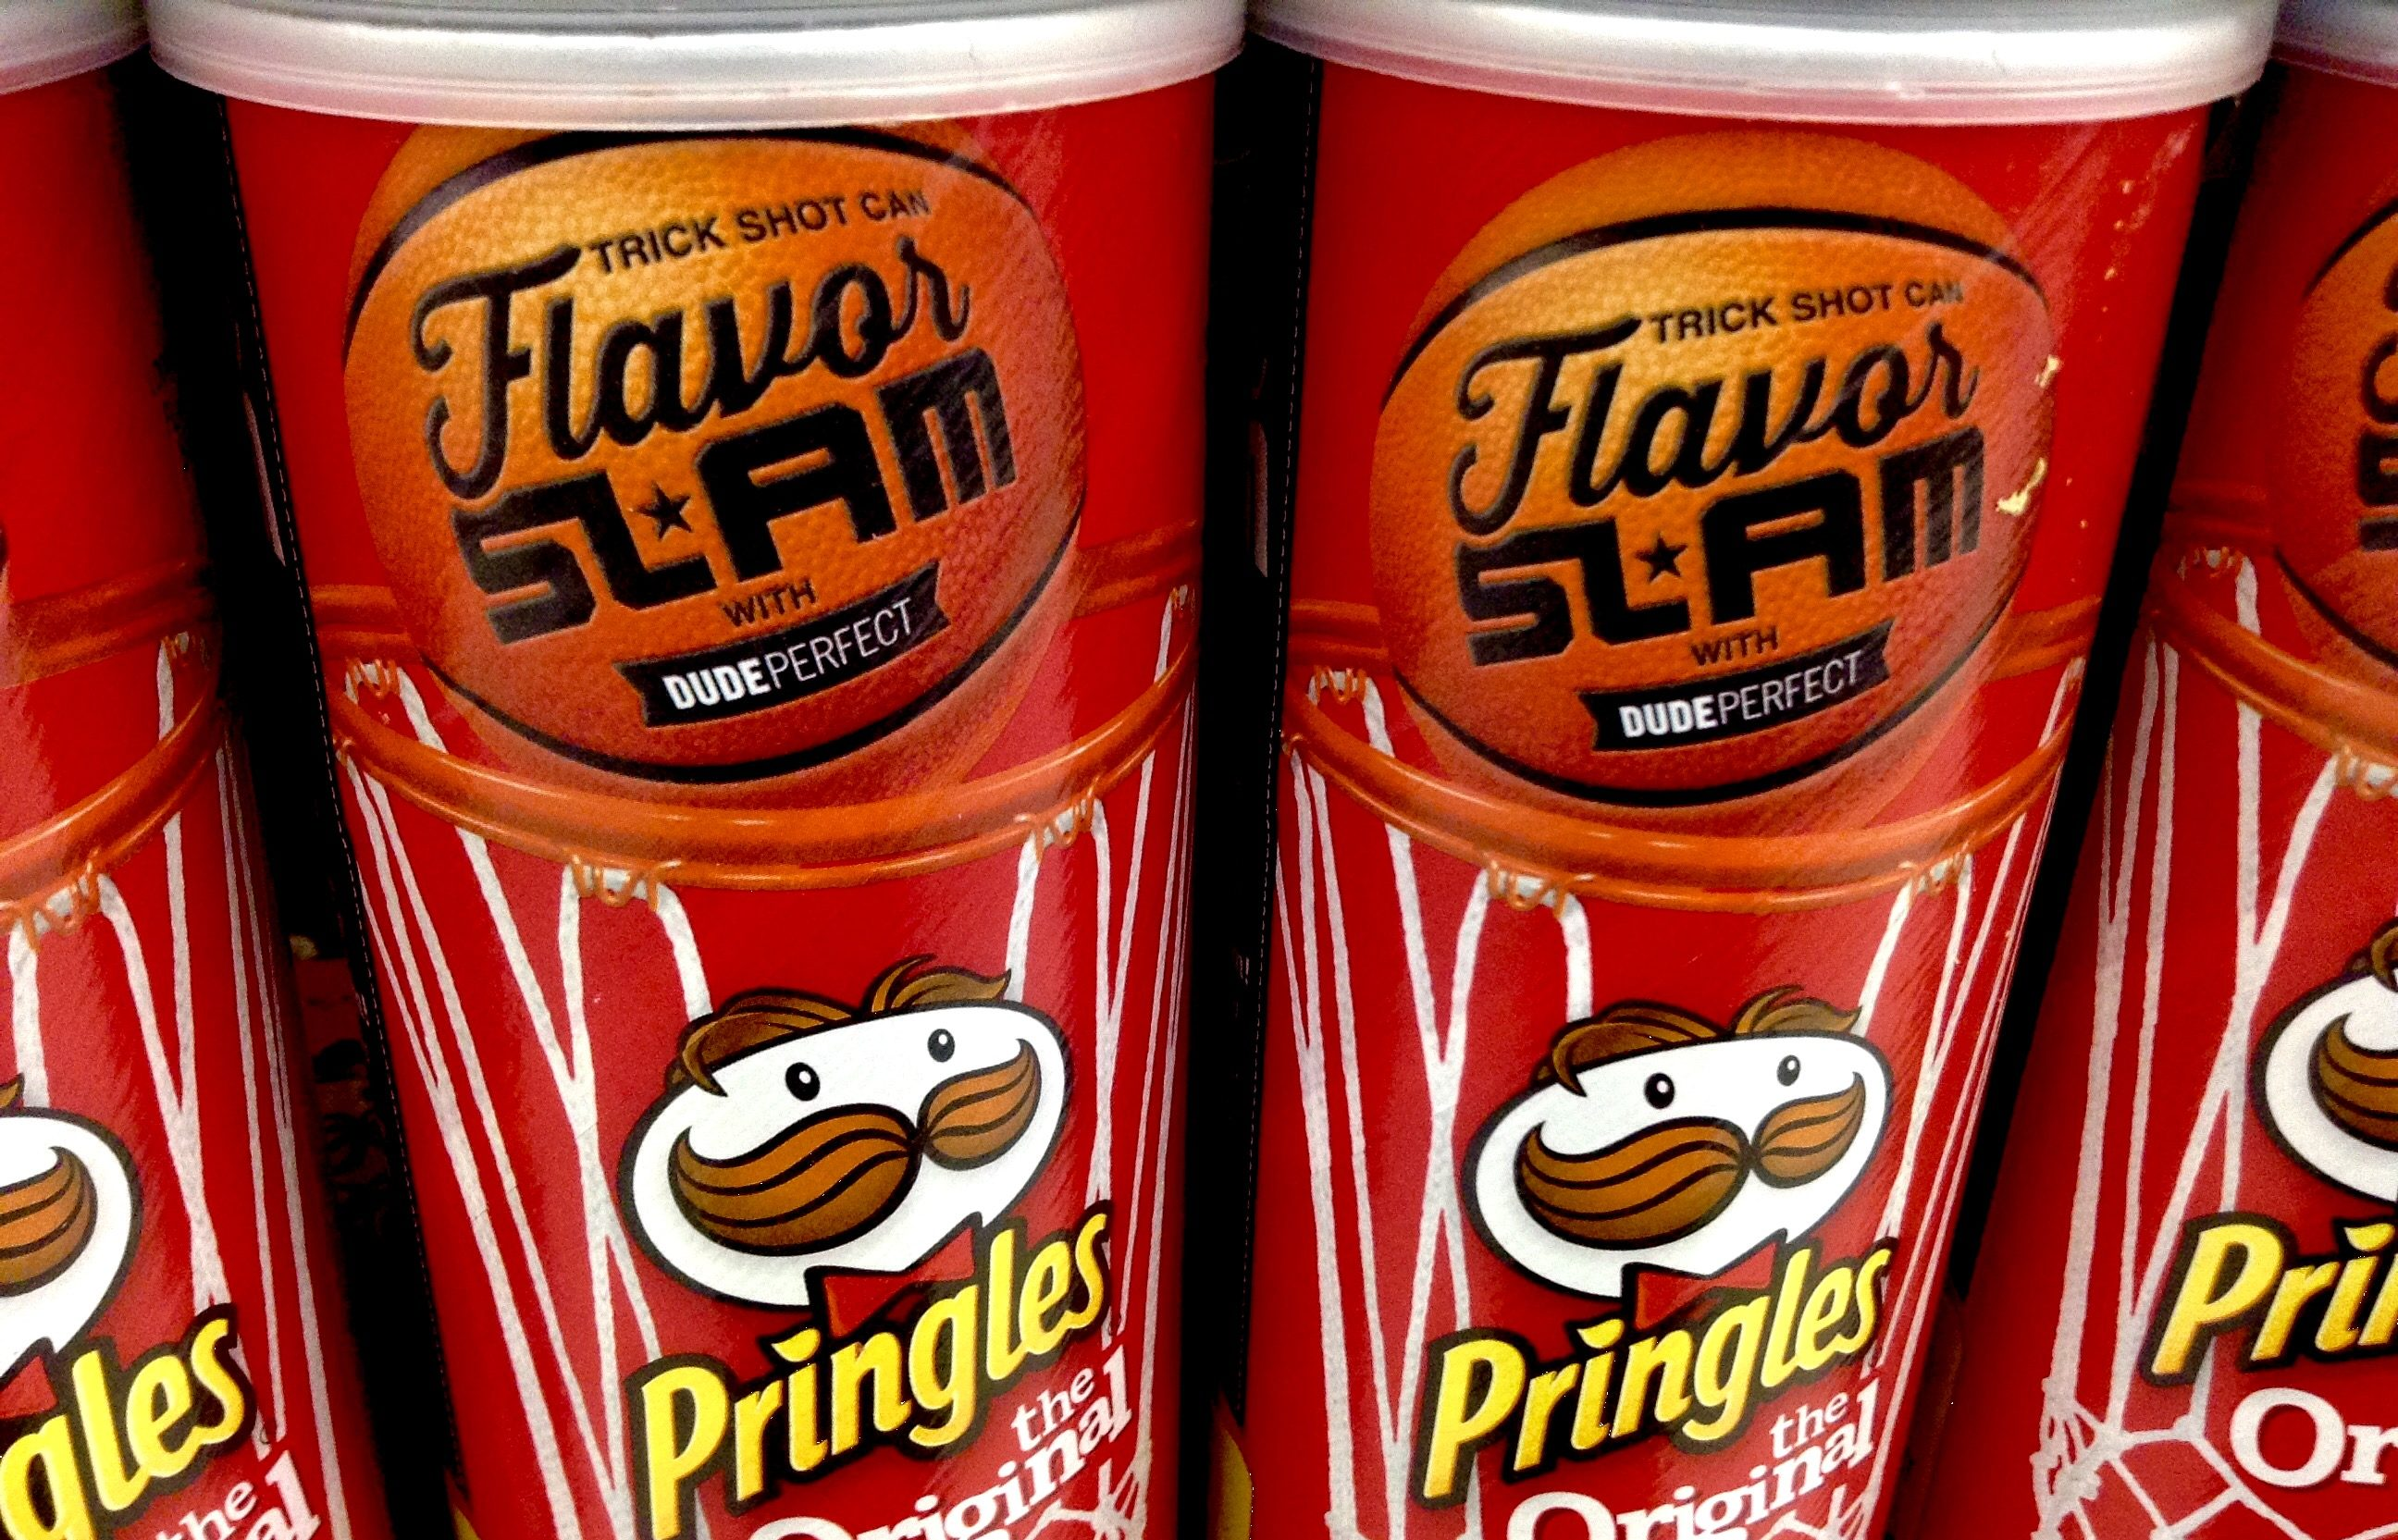 Unboxing, unboxed: Pringles packaging